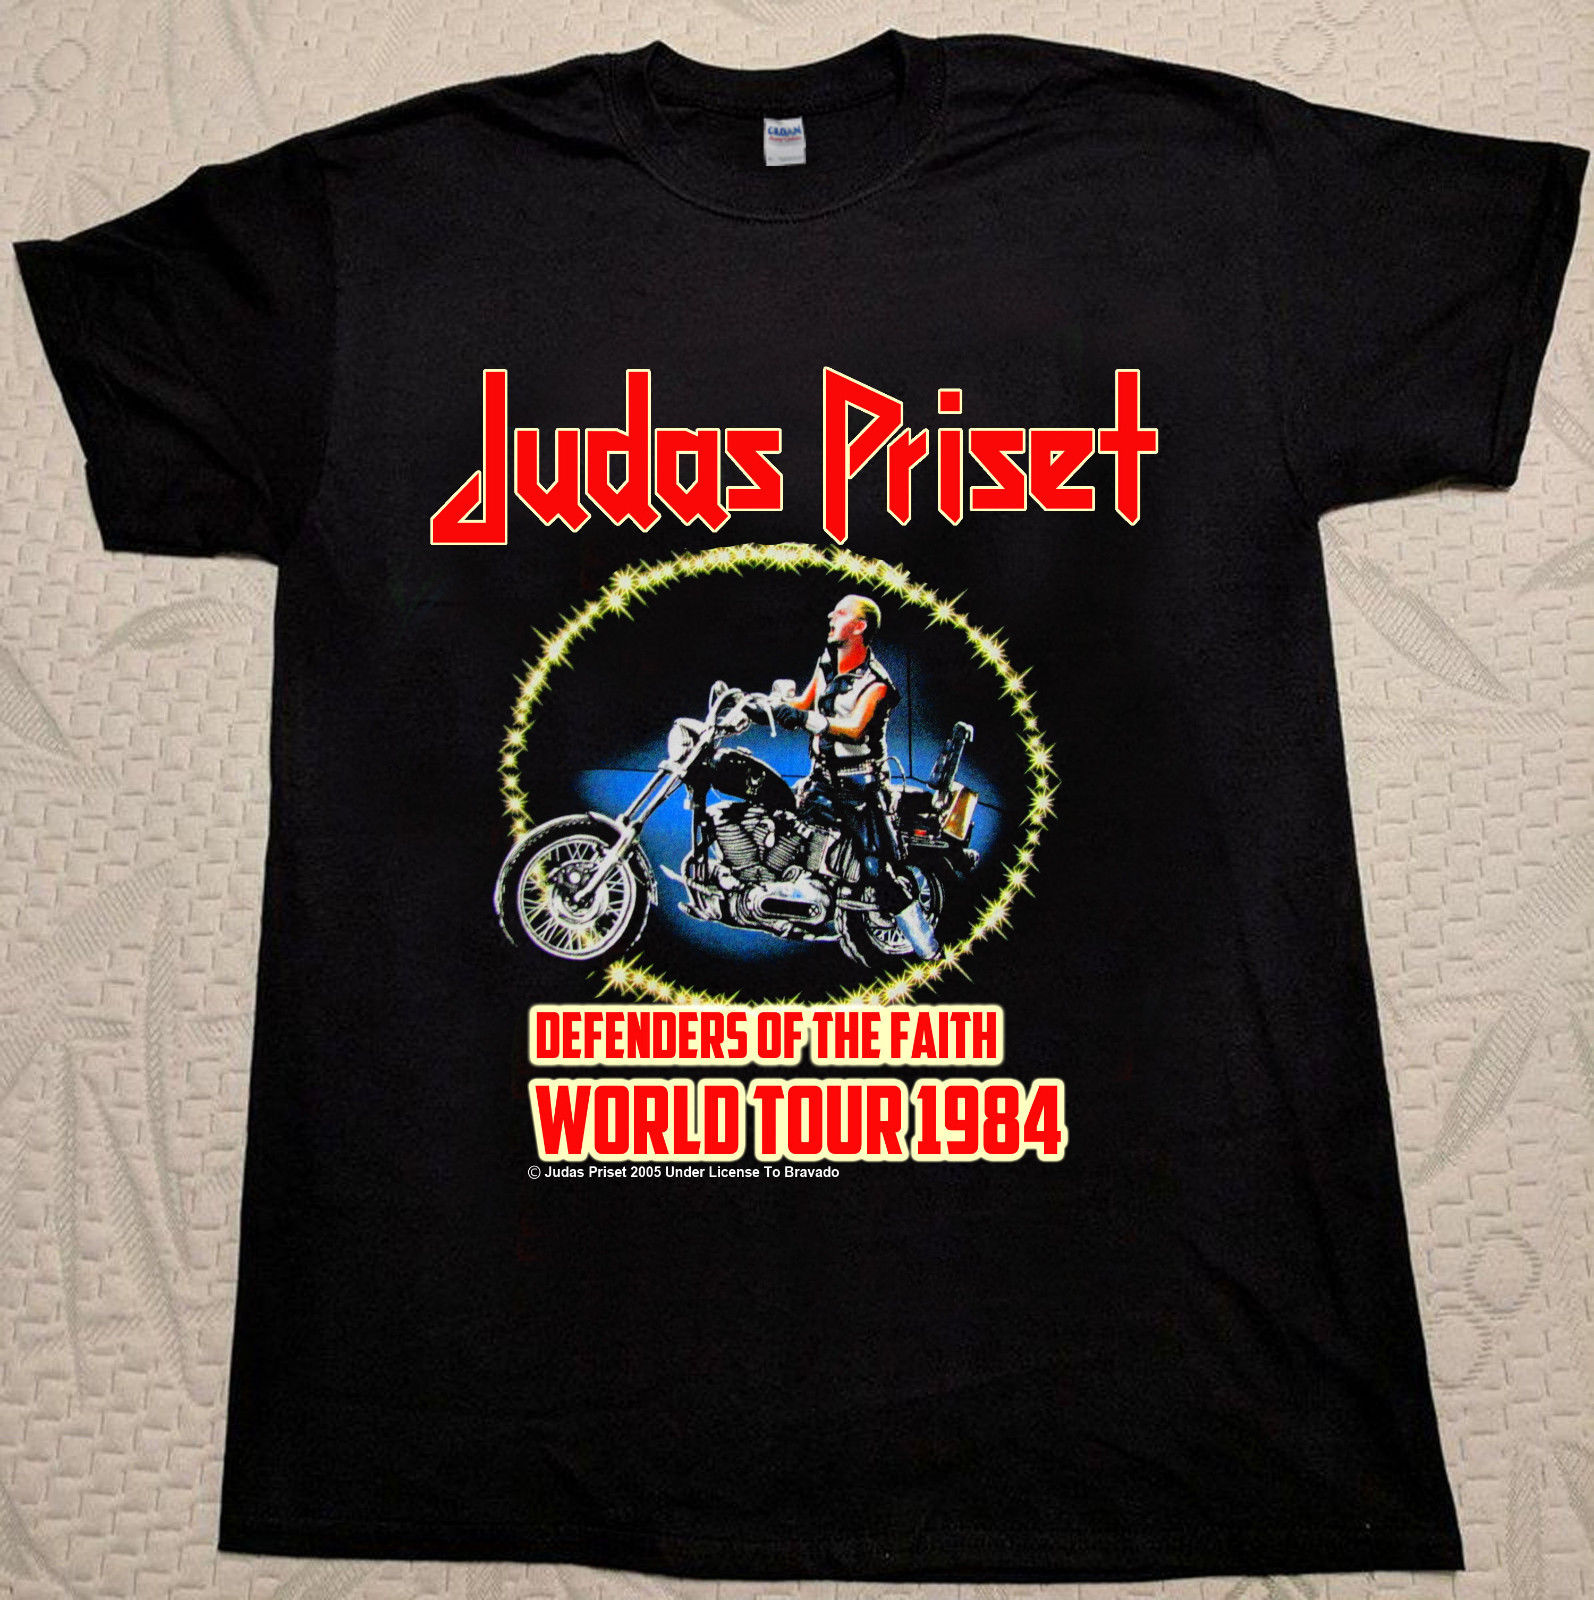 T-Shirt Concert Judas Priest World Tour 1984 We're Back Kicking Ass Rock&Roll T Shirt Men Short Sleeve Funny TOP TEE image